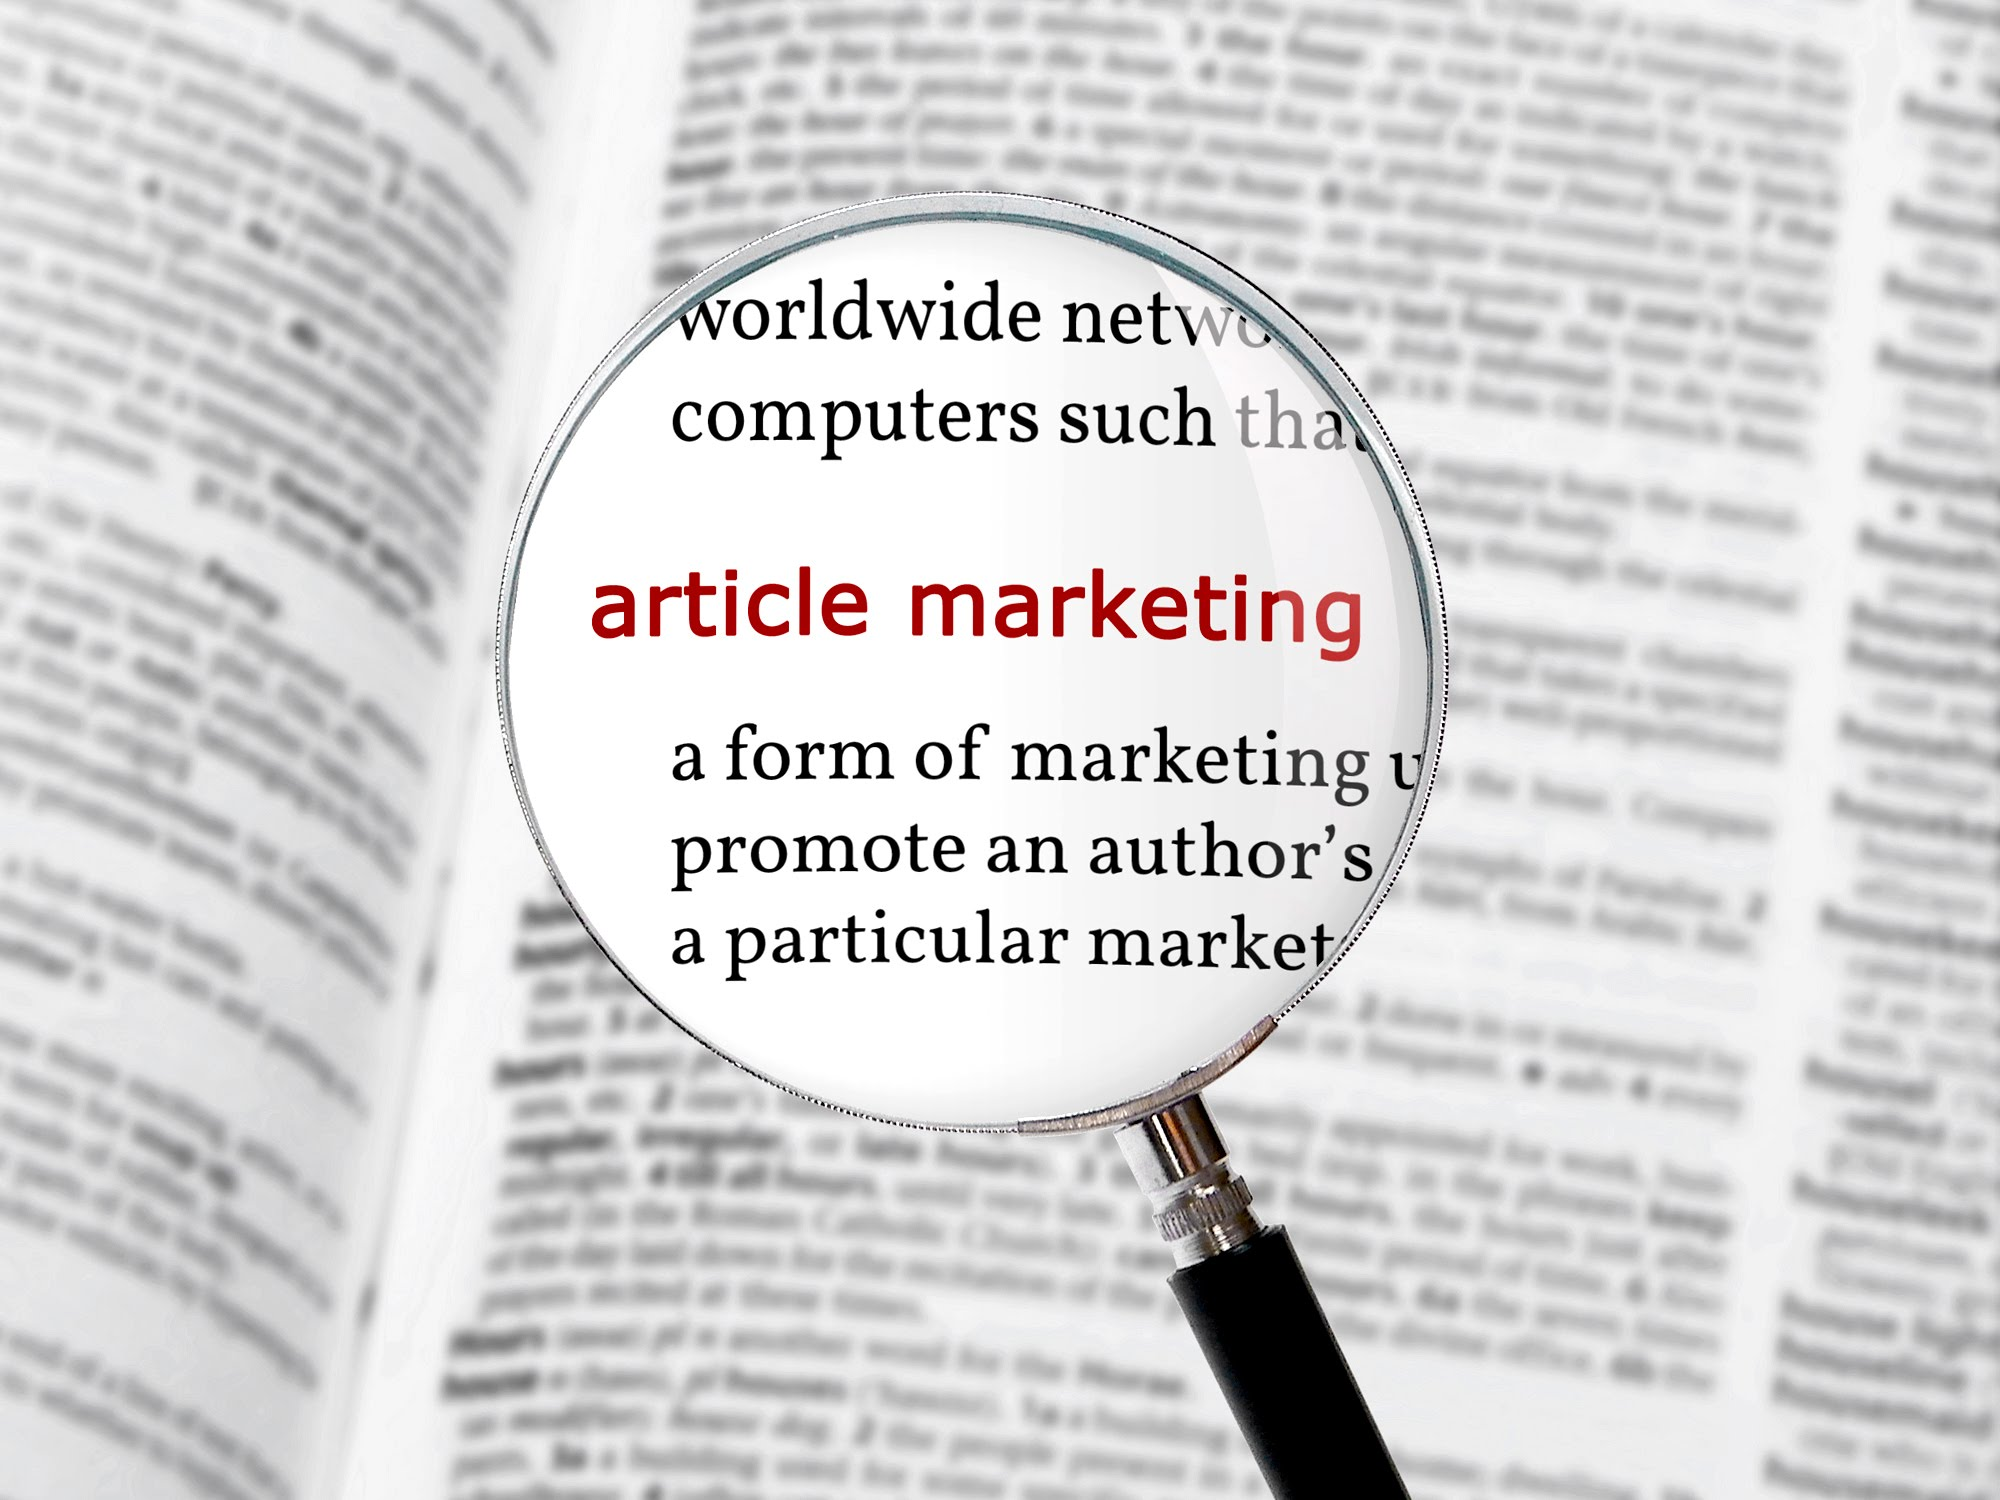 Never Fall Behind The Competition With These Article Marketing Tips